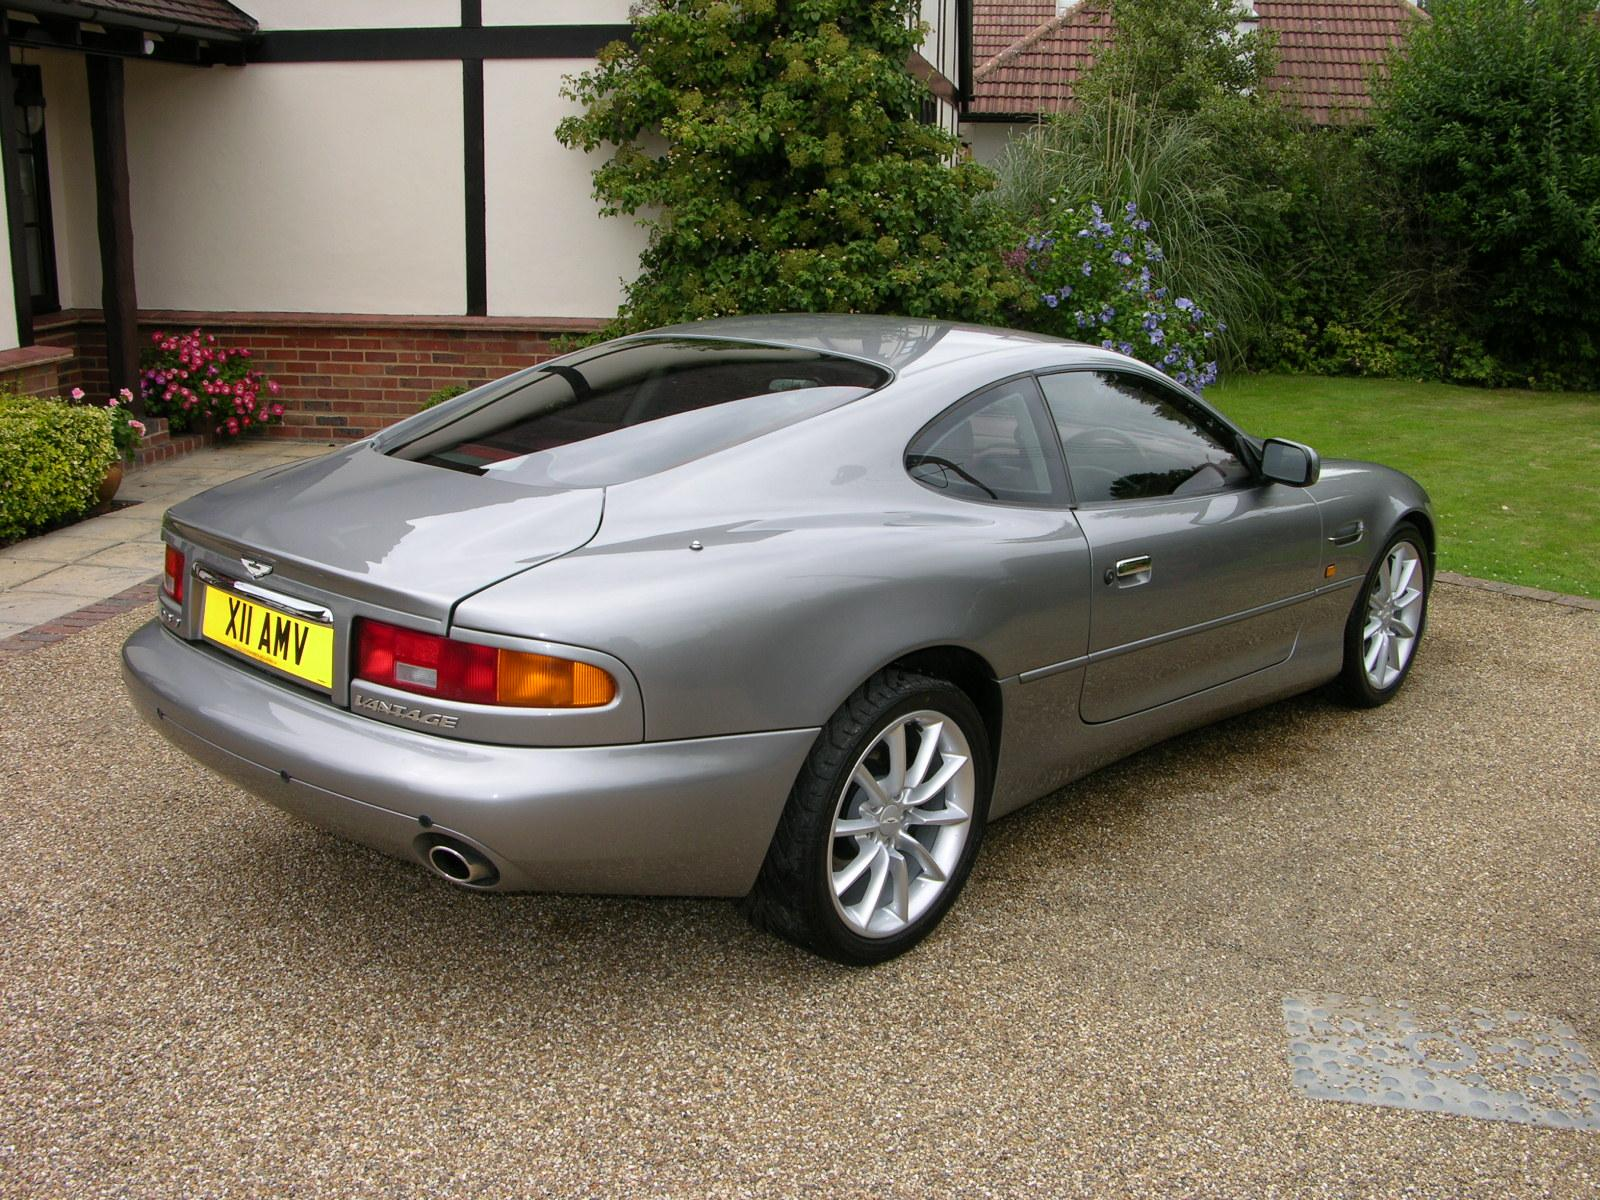 2012 Aston Martin Db7 Vantage Pictures Information And Specs